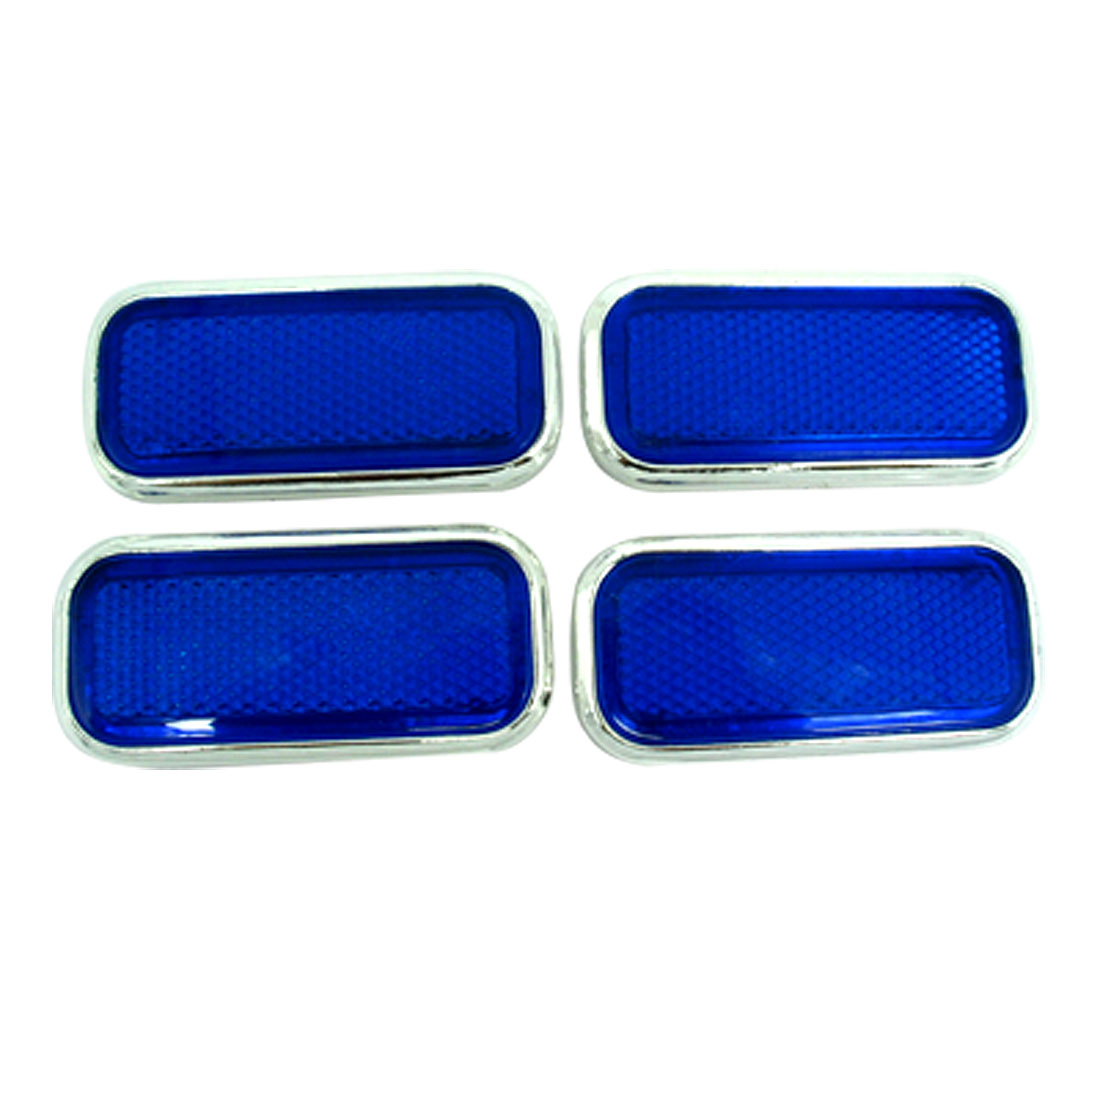 Cube Car Bumper Reflector Guard Set Blue with Silvery Rim 4 Pieces (HL-6021)